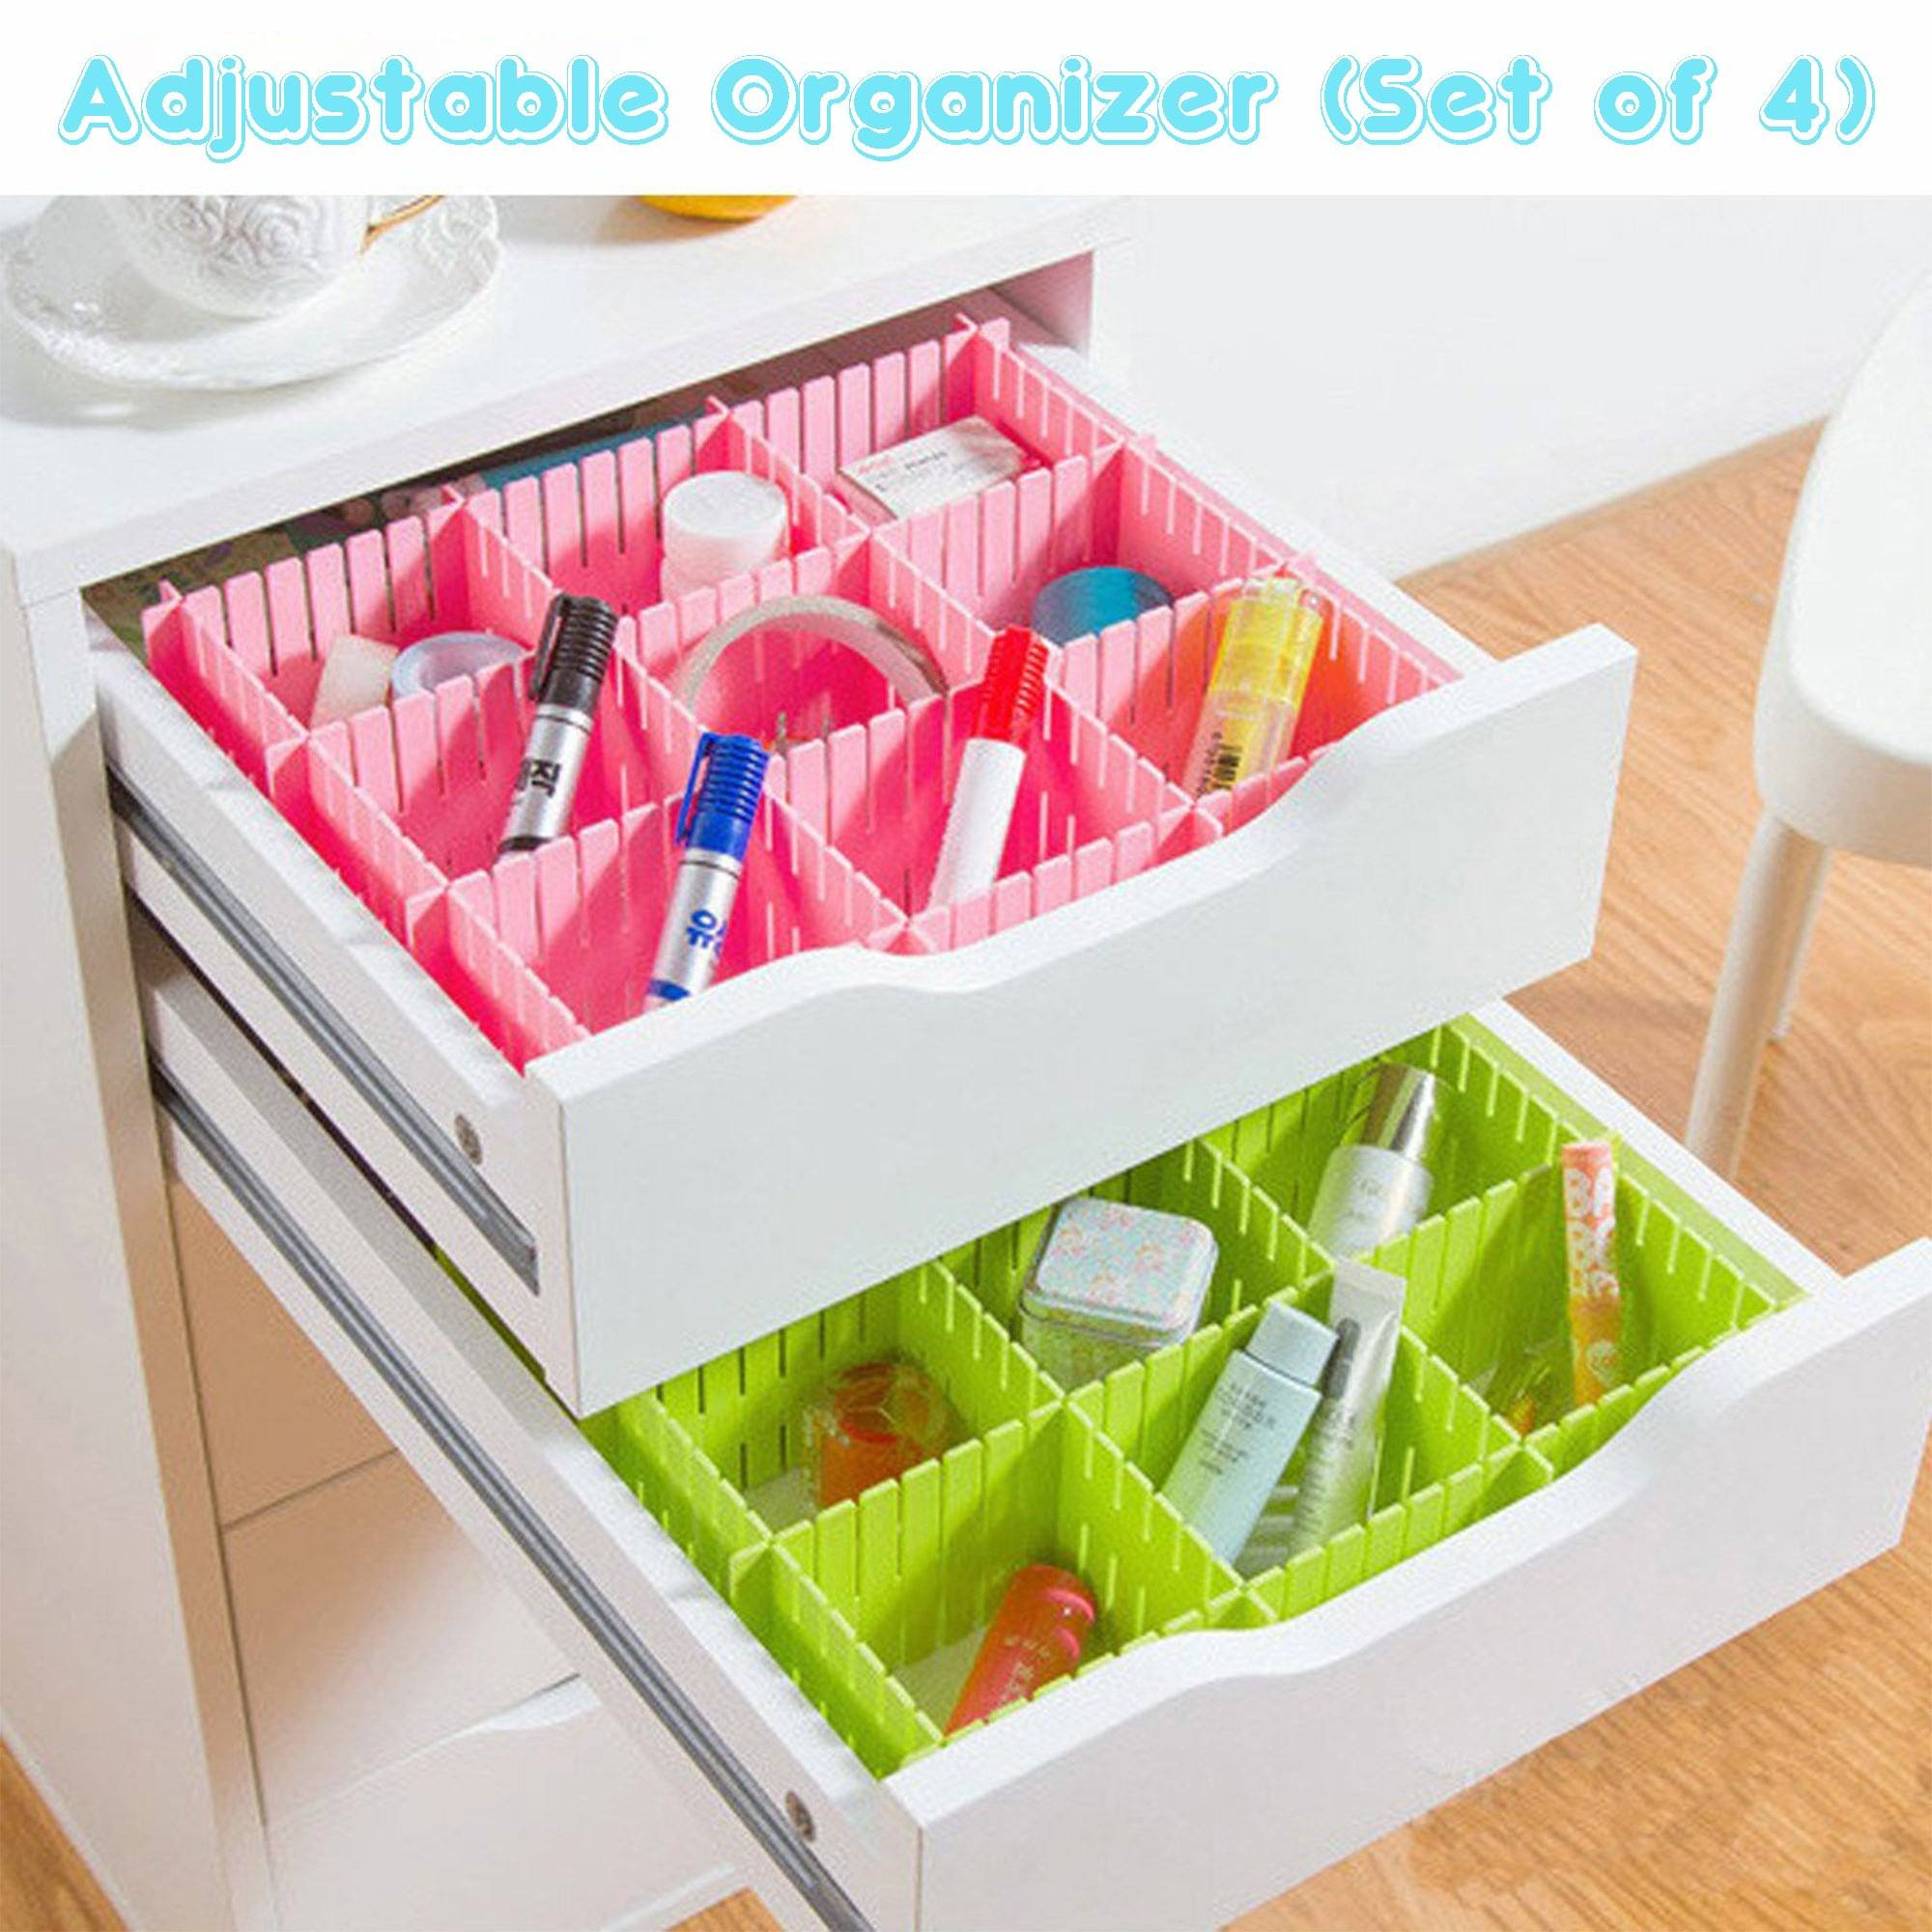 Adjustable Organizer (Set of 4)